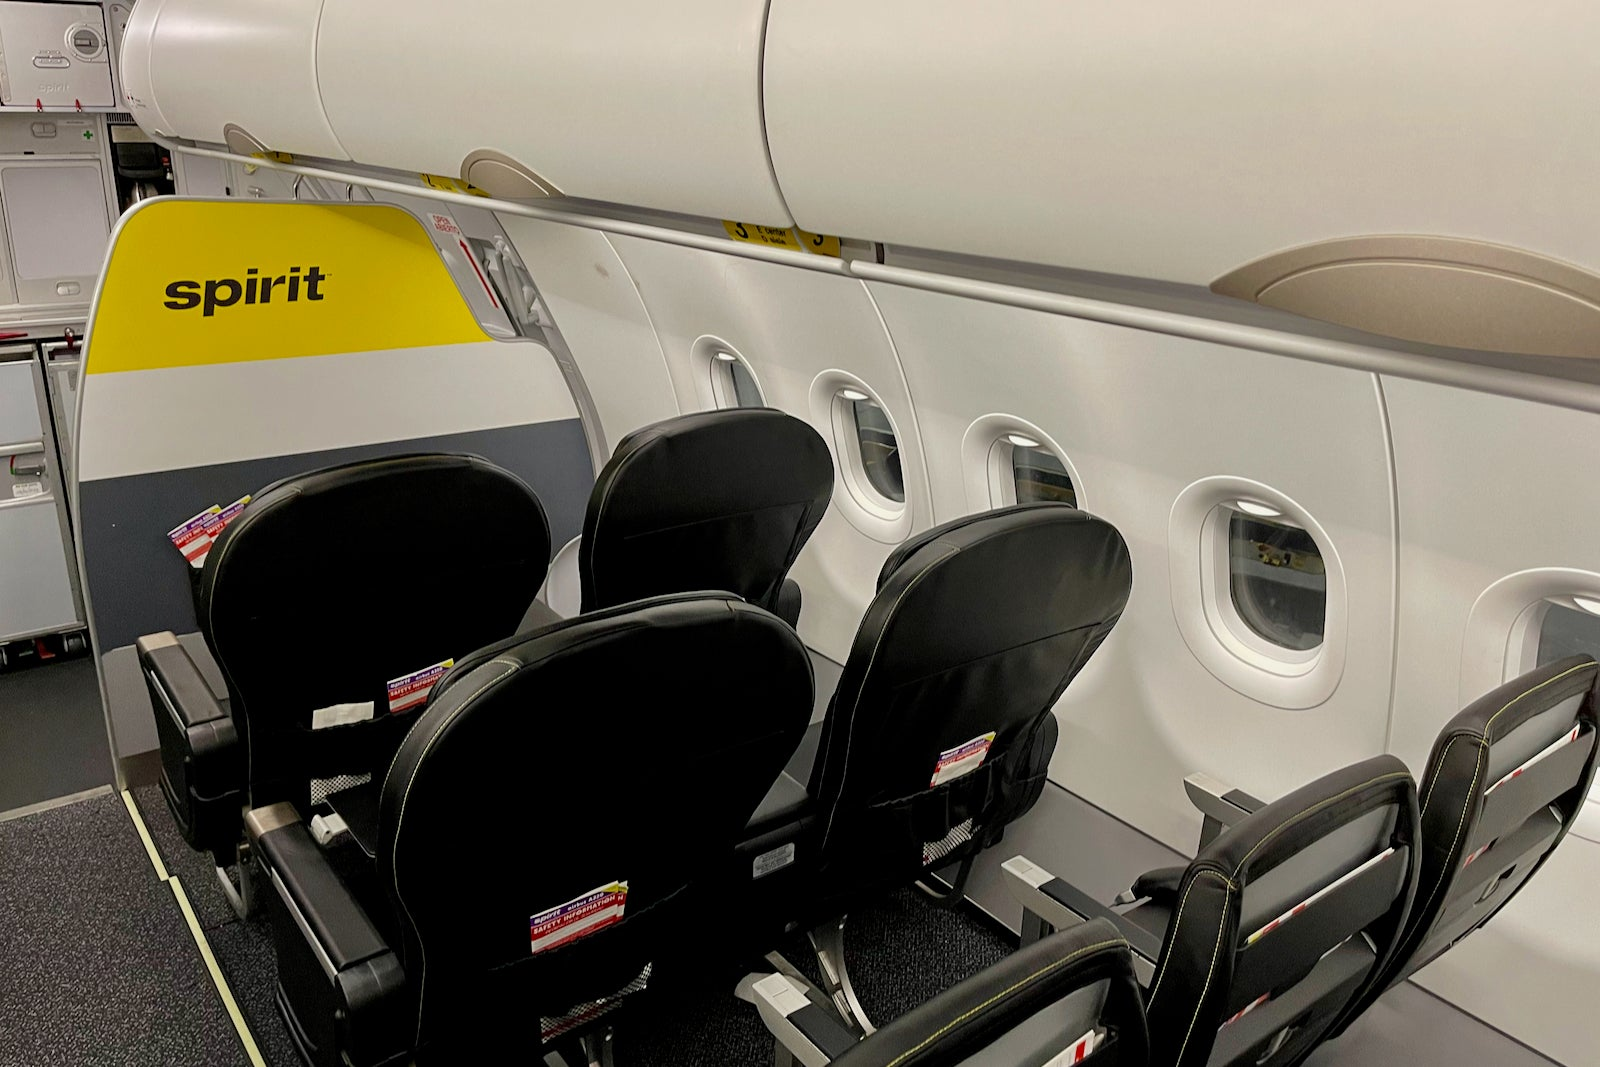 8 thoughts from my first Spirit Airlines flight in over 3 years - The Points Guy